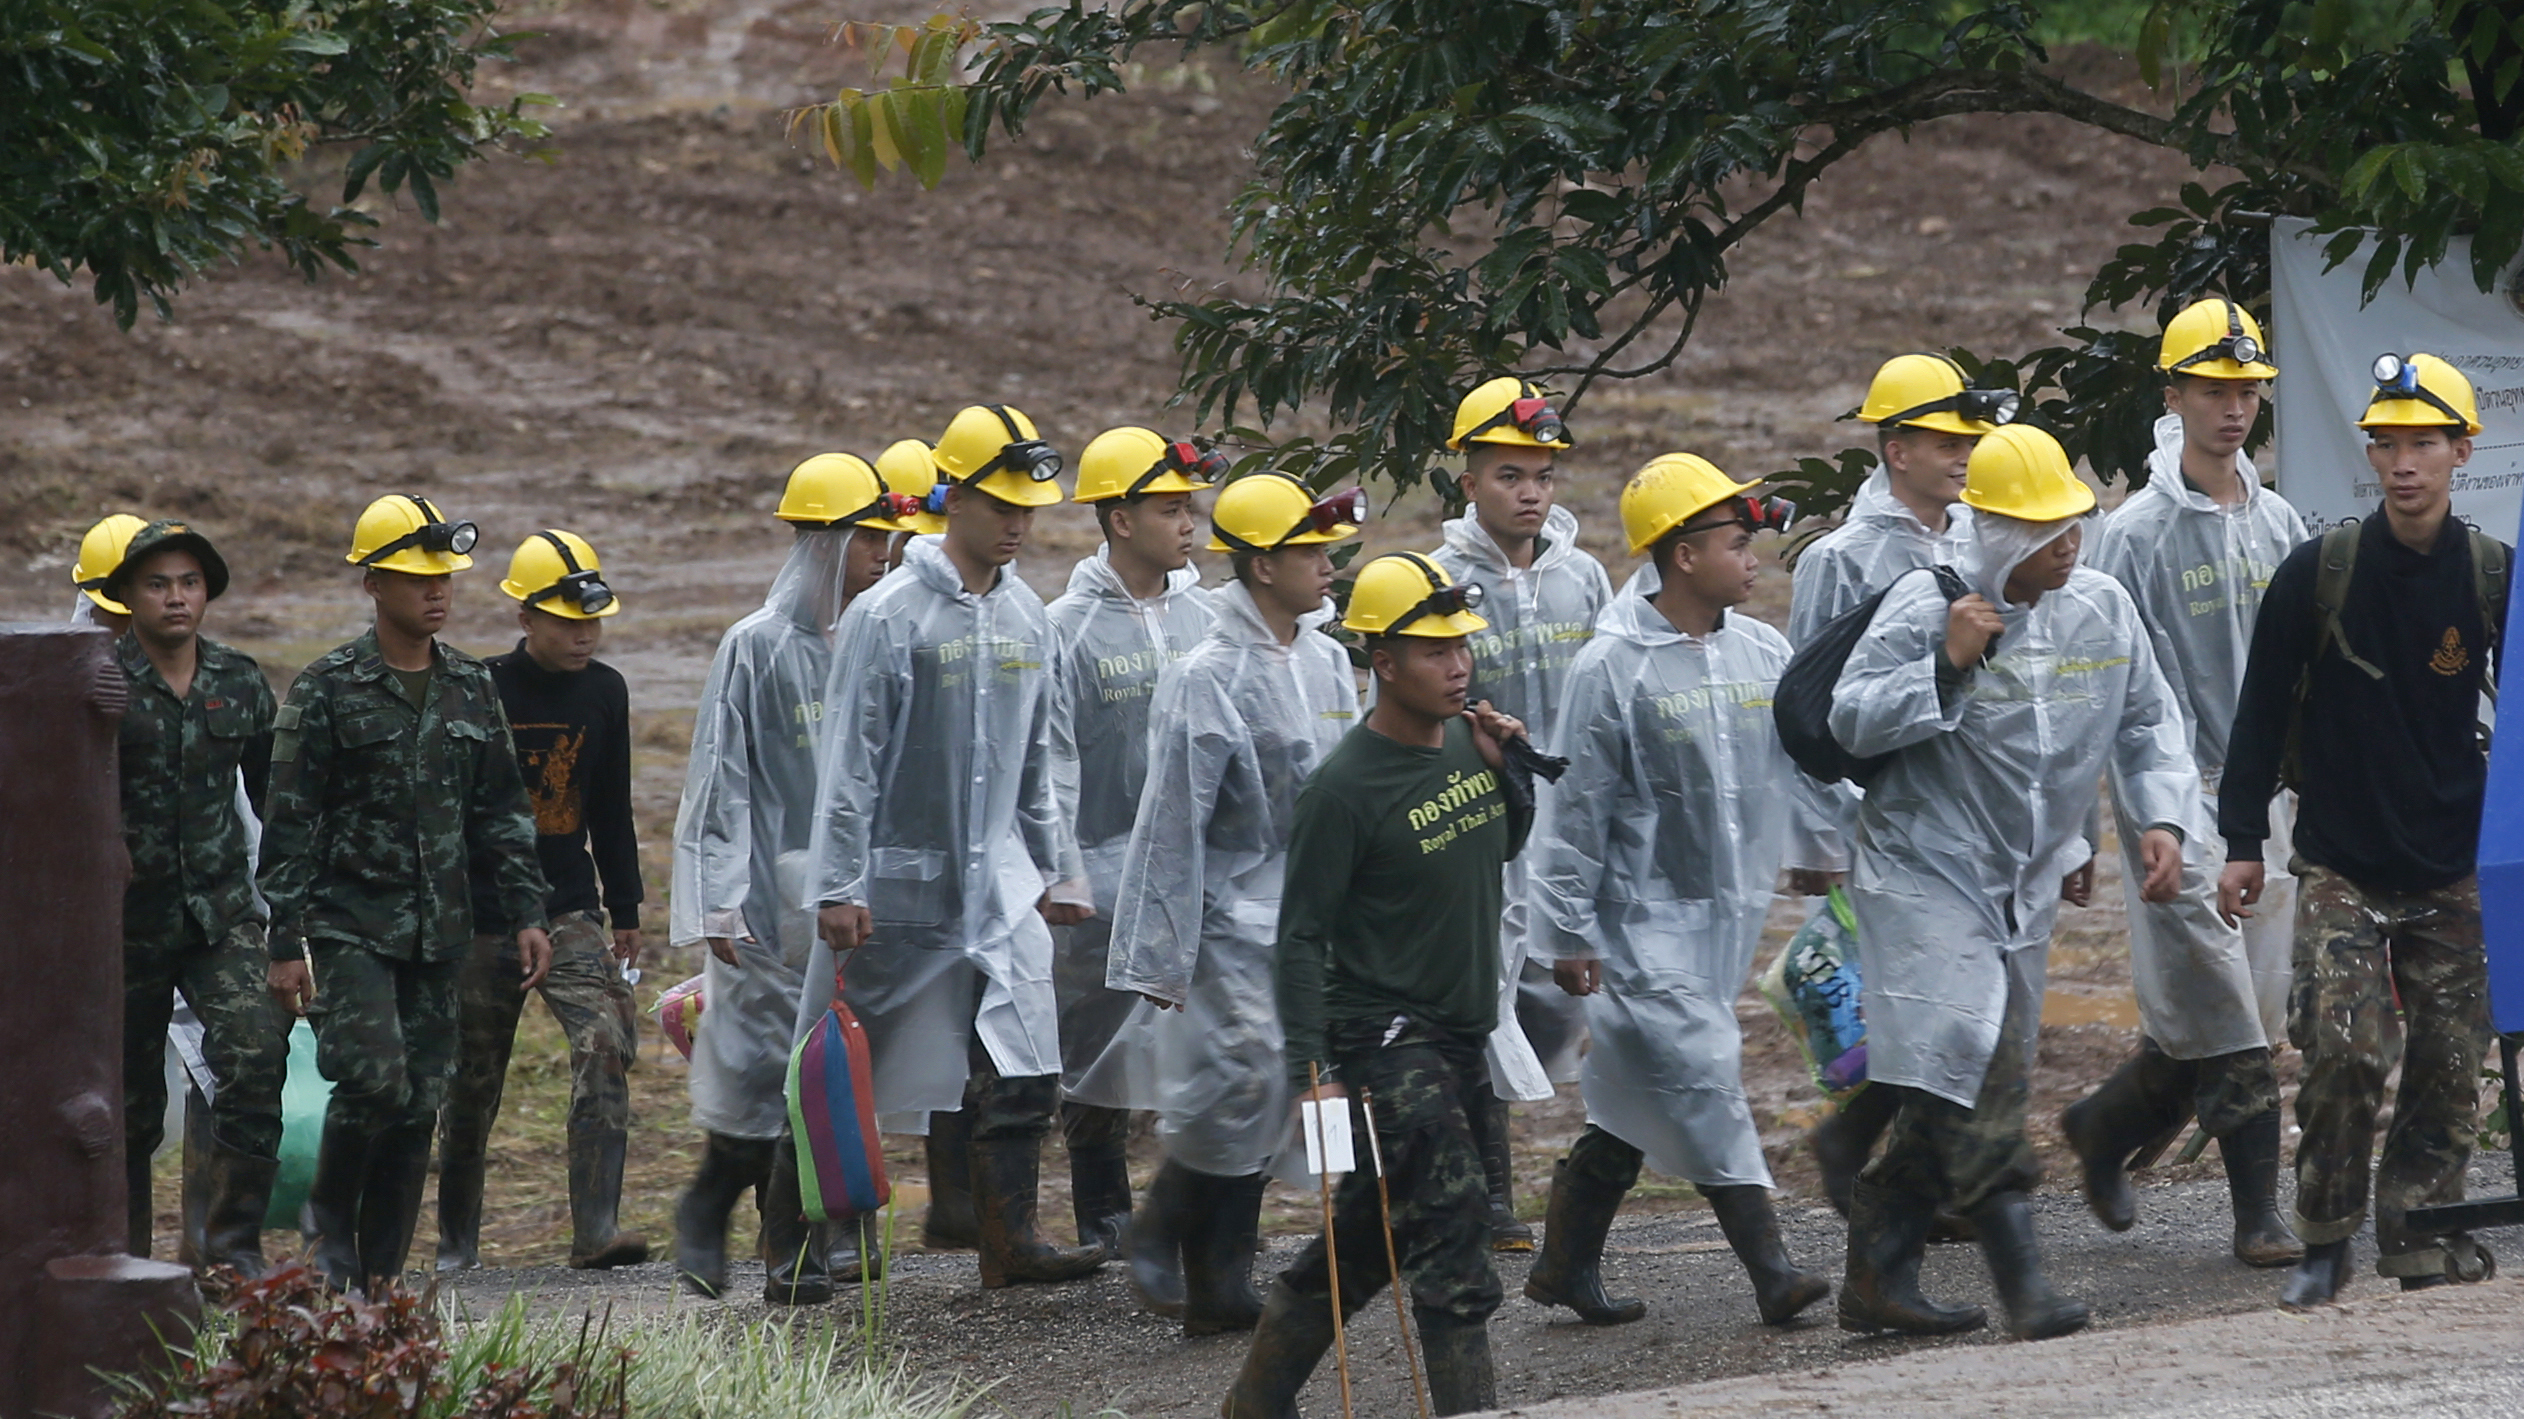 The 11th Member Of The Trapped Thai Football Team Has Been Rescued